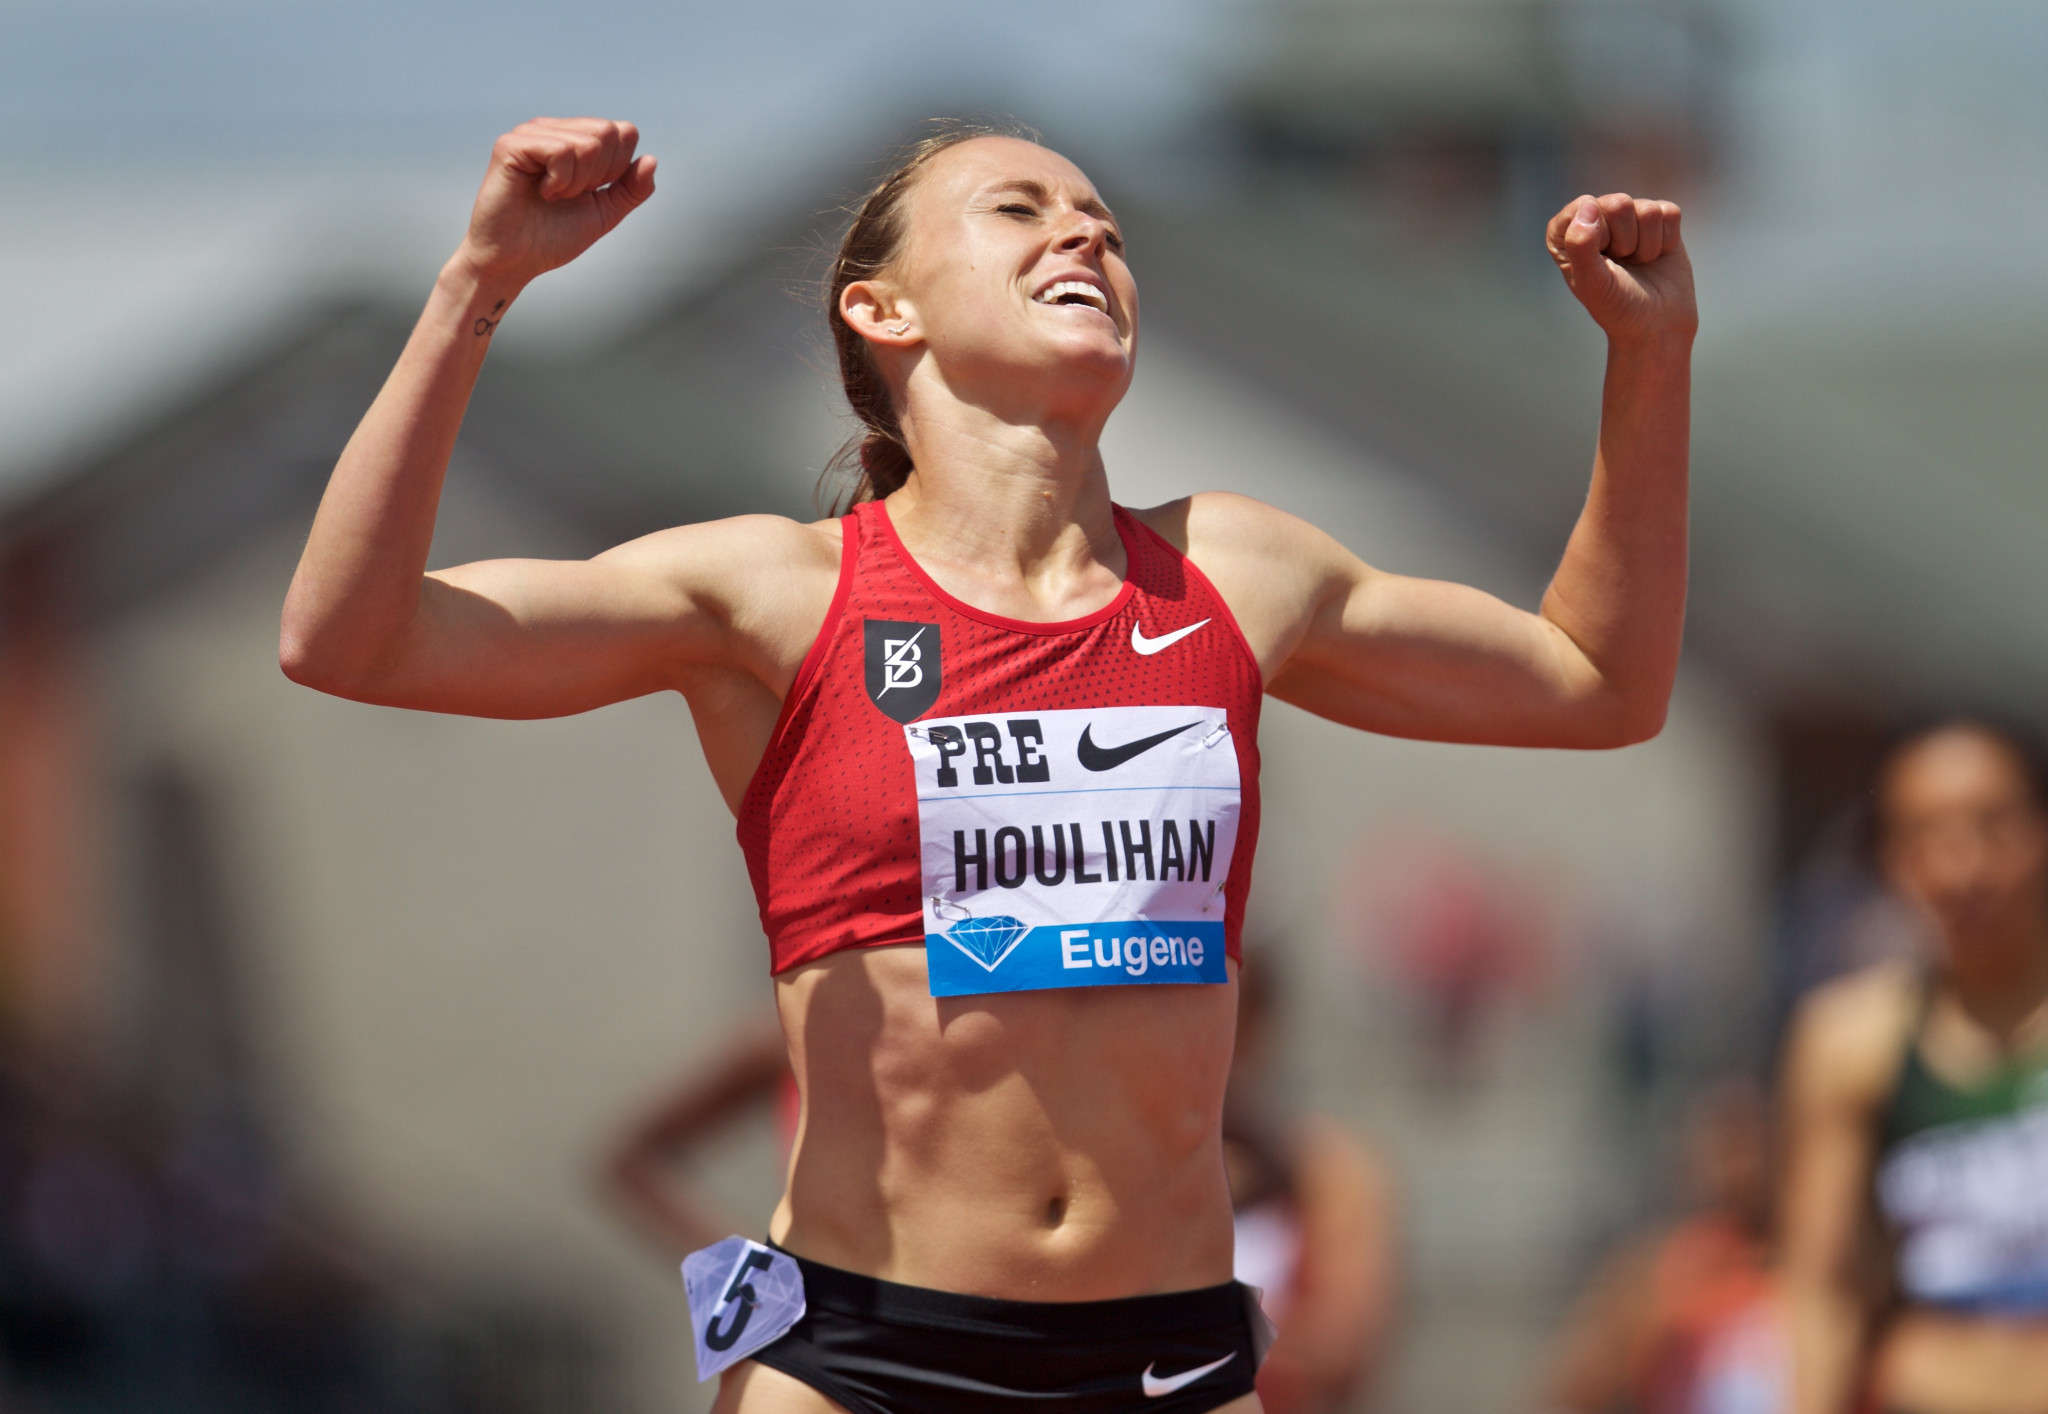 Houlihan given four-year doping ban but blames burrito for failed drugs test